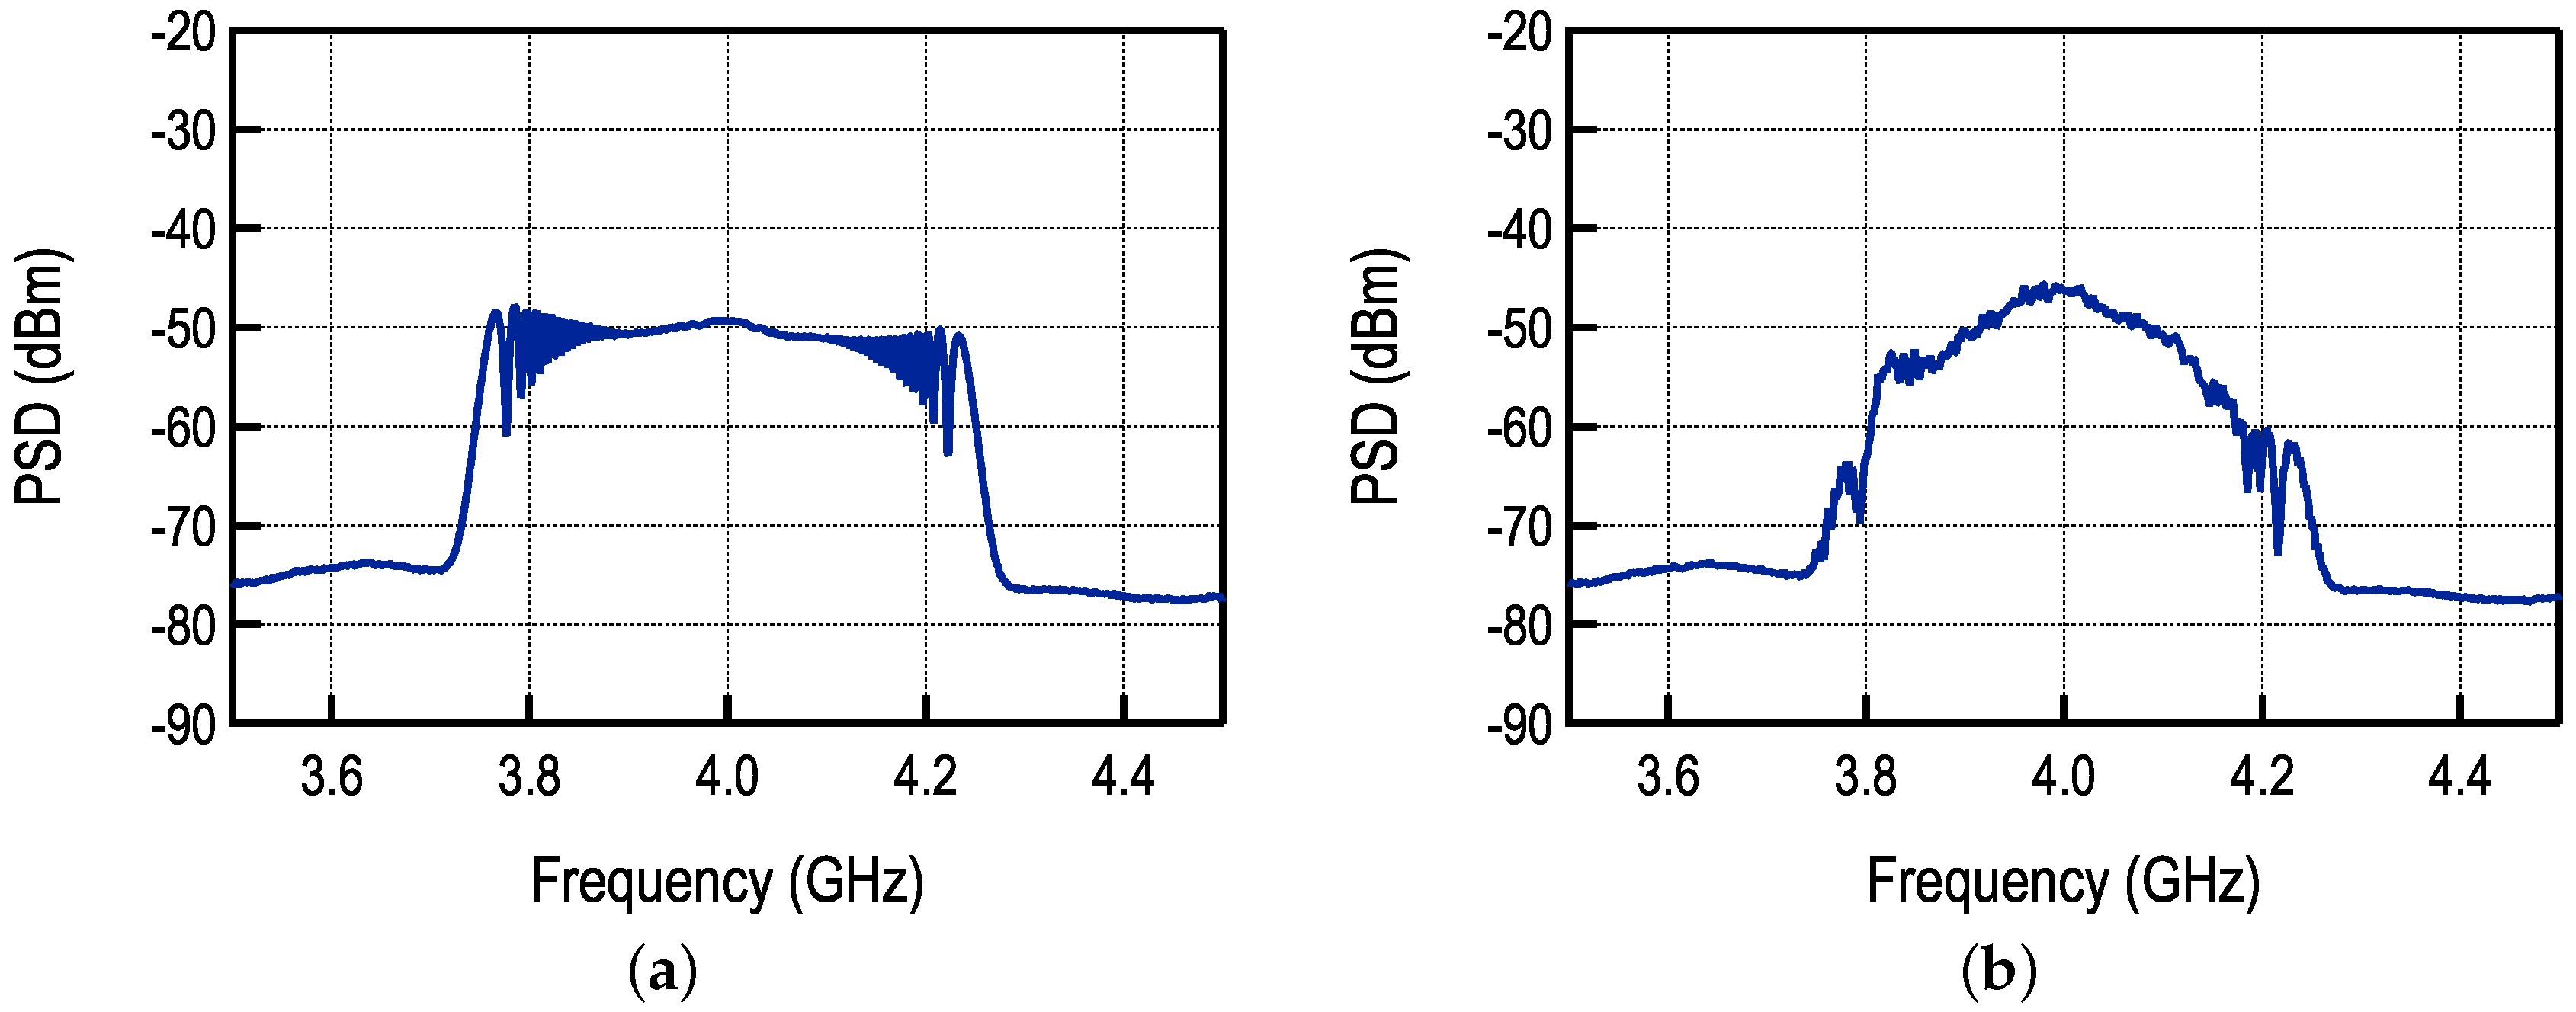 Sensors Free Full Text Fm Uwb Towards A Robust Low Power Radio Small Narrowband Receiving Integrated Circuit From 17 01043 G017